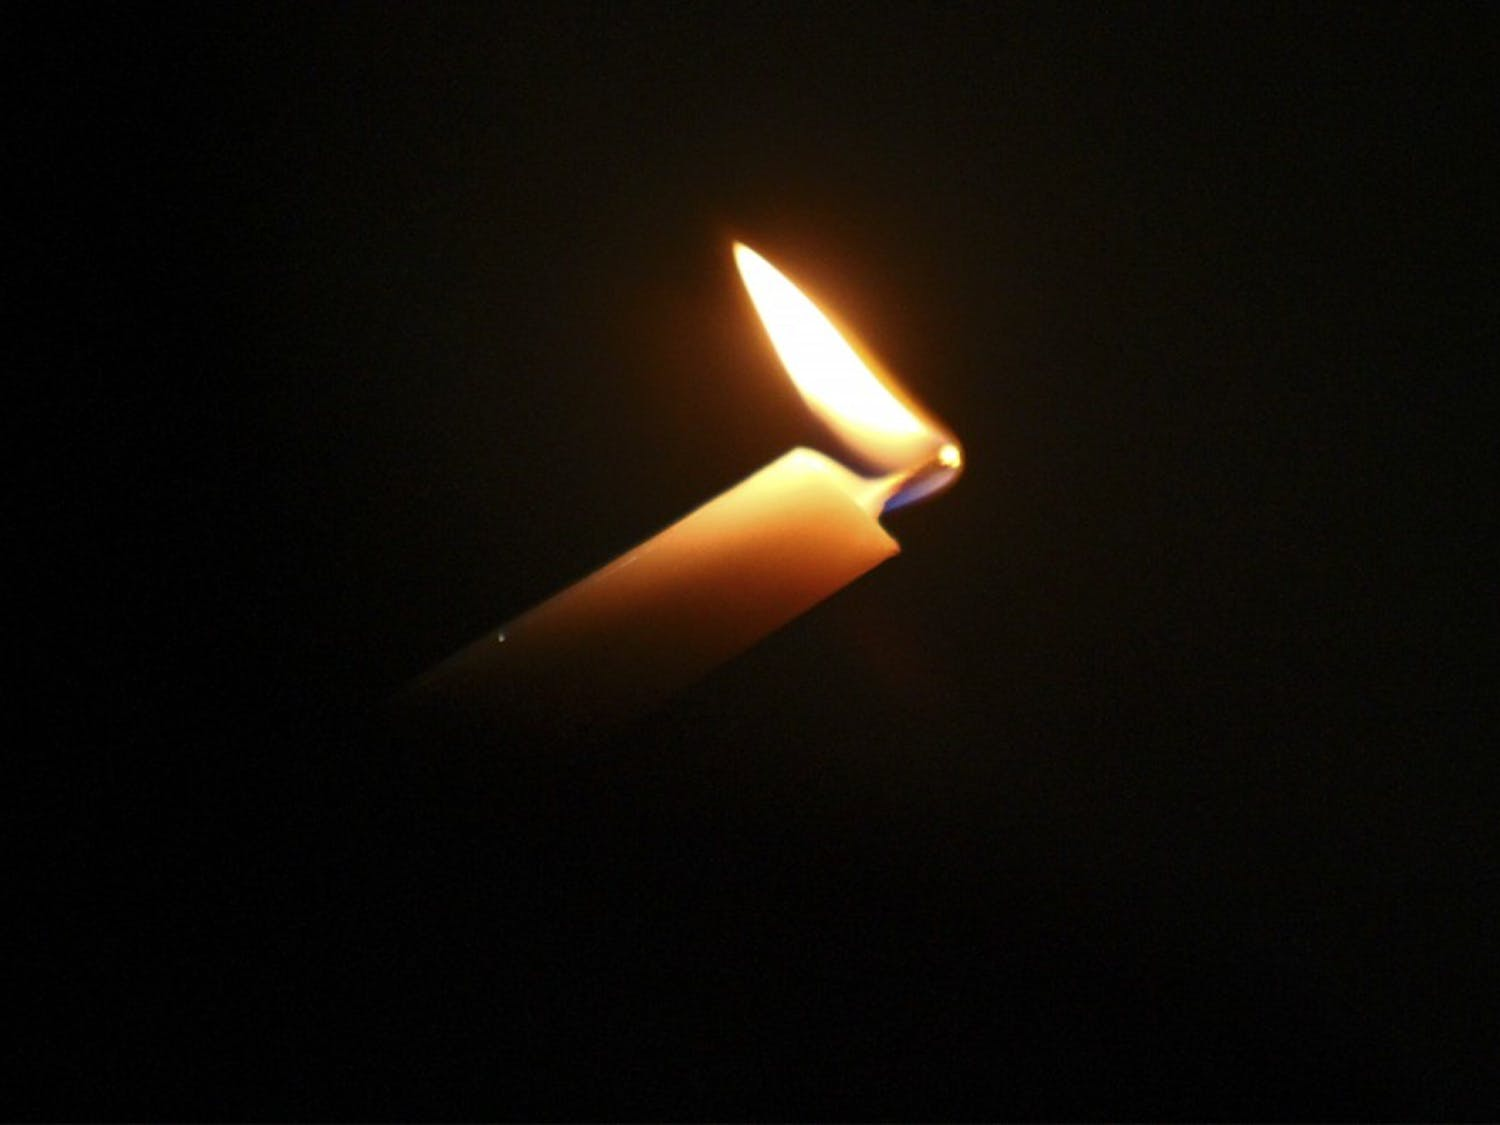 A candlelight vigil in the Pit remembered Deah Shaddy Barakat, Tusor Mohammed Abu-Salha and Razan Mohammed Abu-Salha on Wednesday.